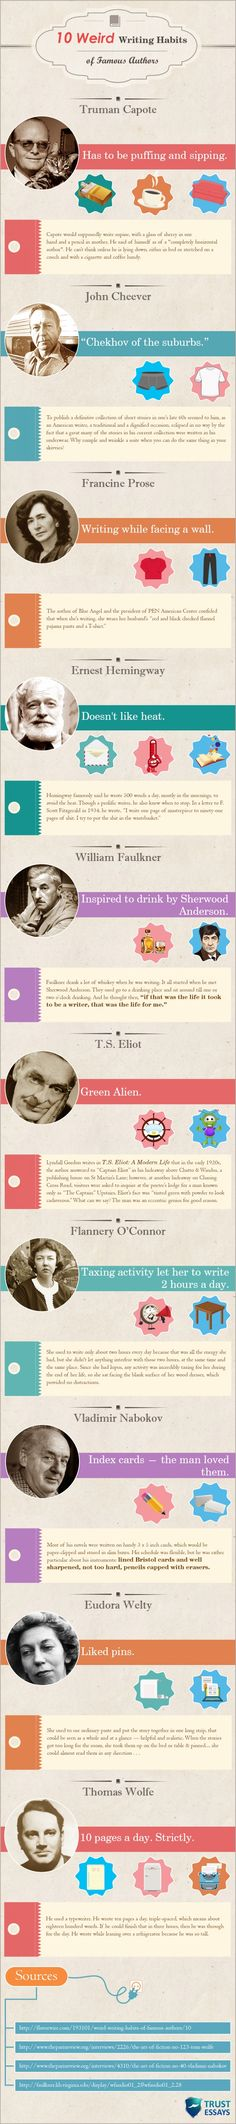 10 Weird Writing Habits of Famous Authors